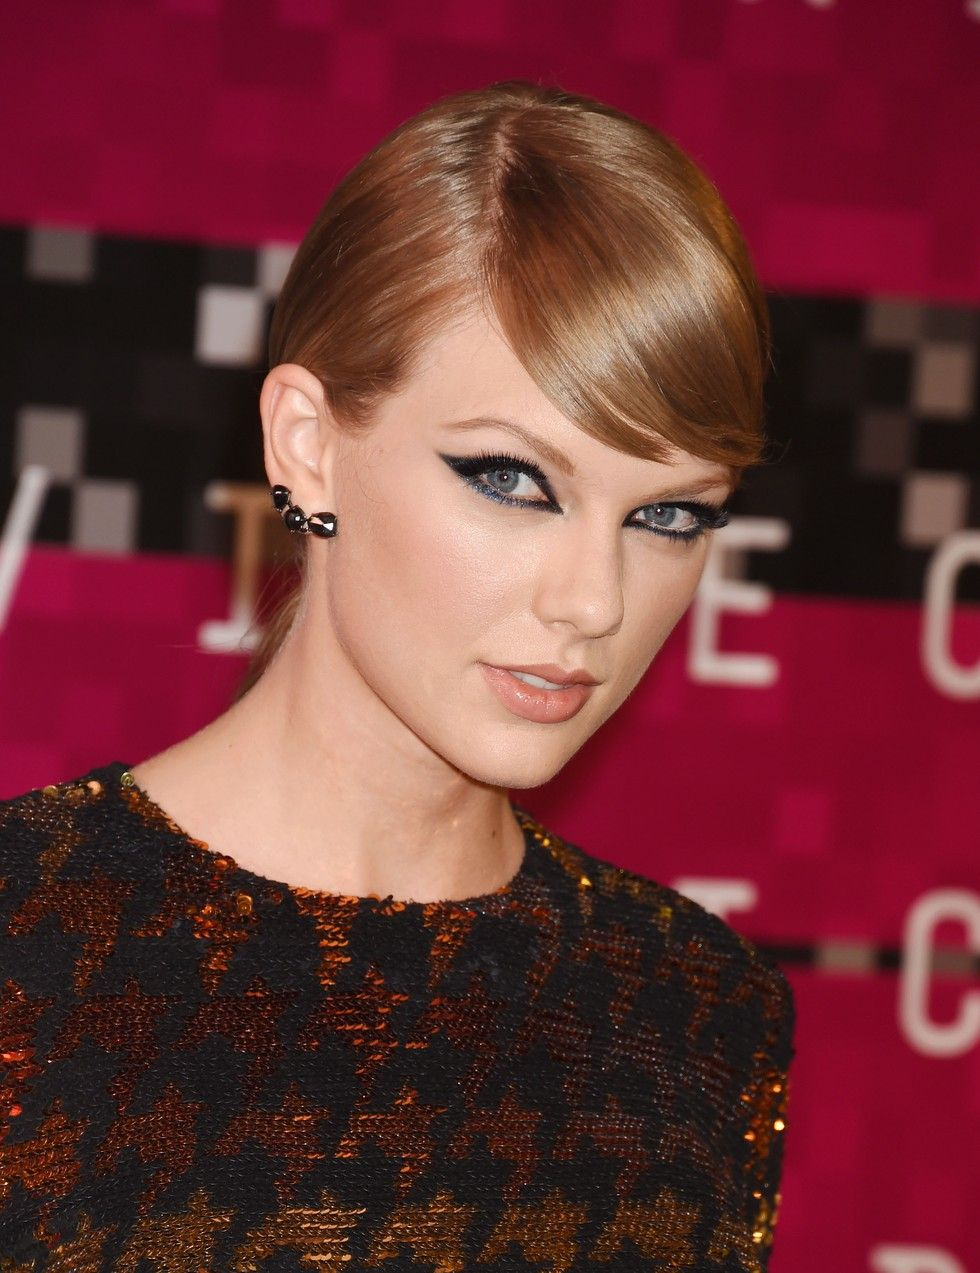 Taylor Swift S Side Swept Bangs Paired With The Winged Eyeliner